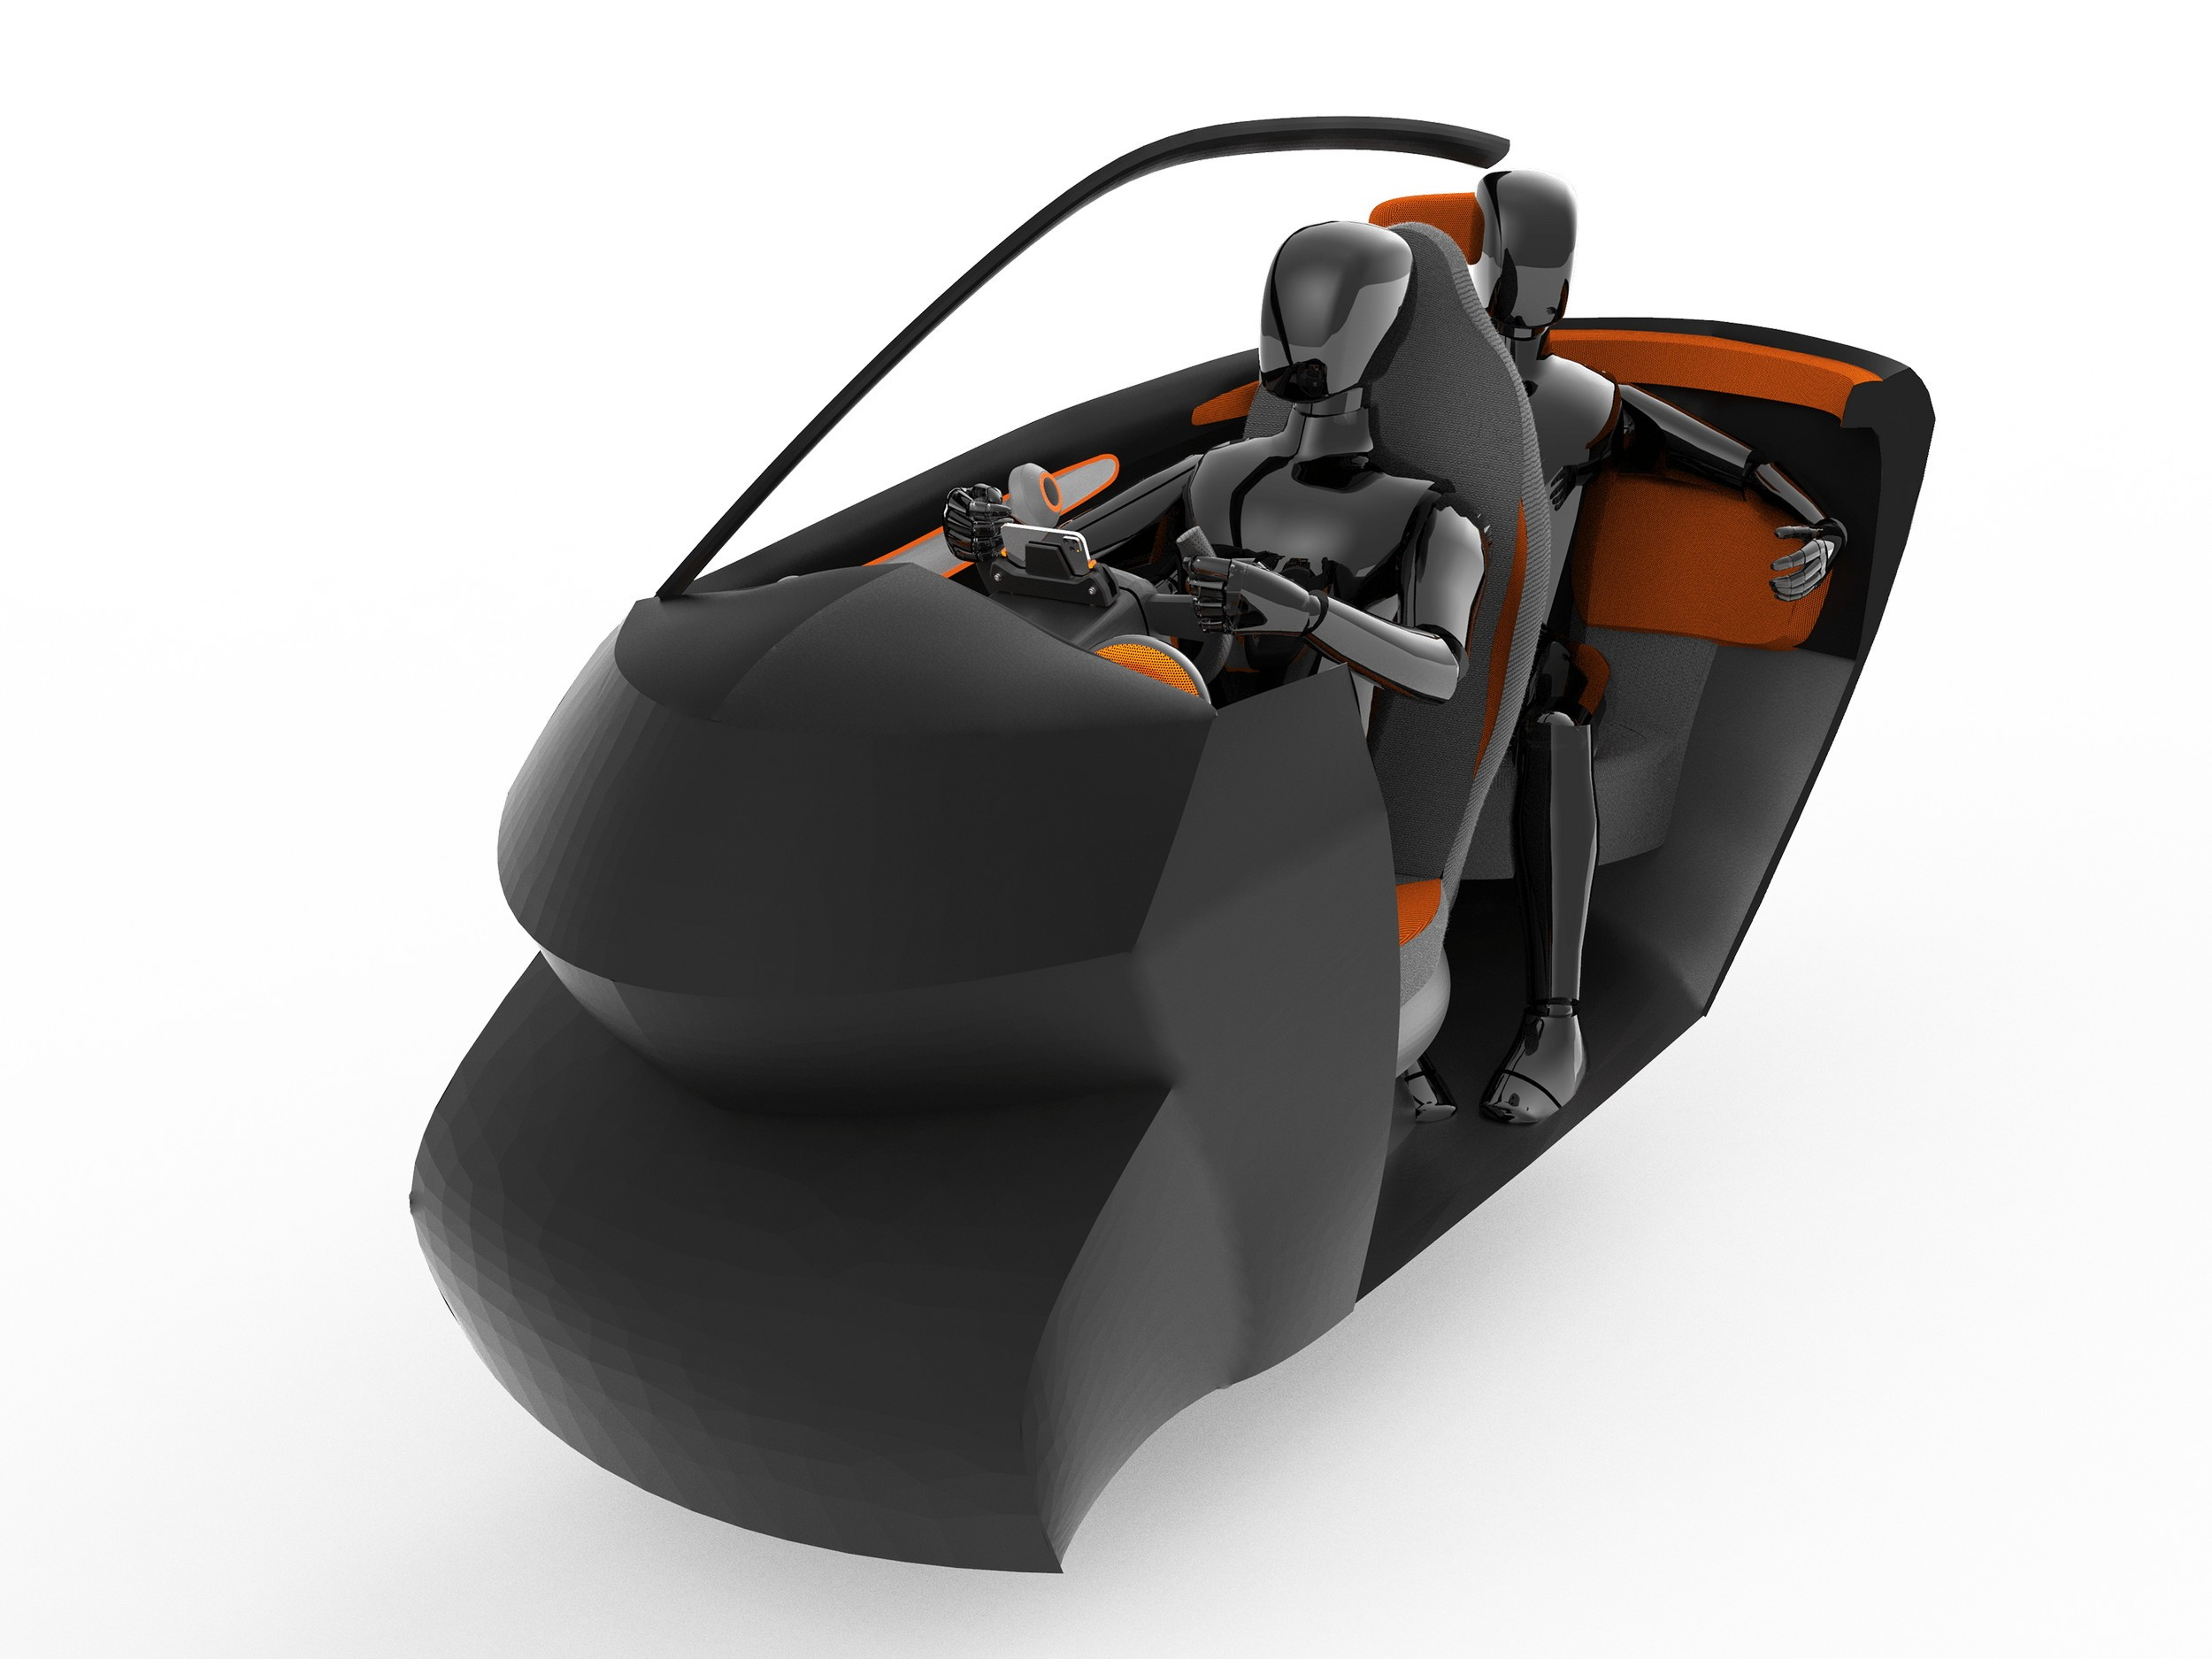 Seat Miniata Project Helps You Rethink Current Mobility Trends and Their Effects - autoevolution